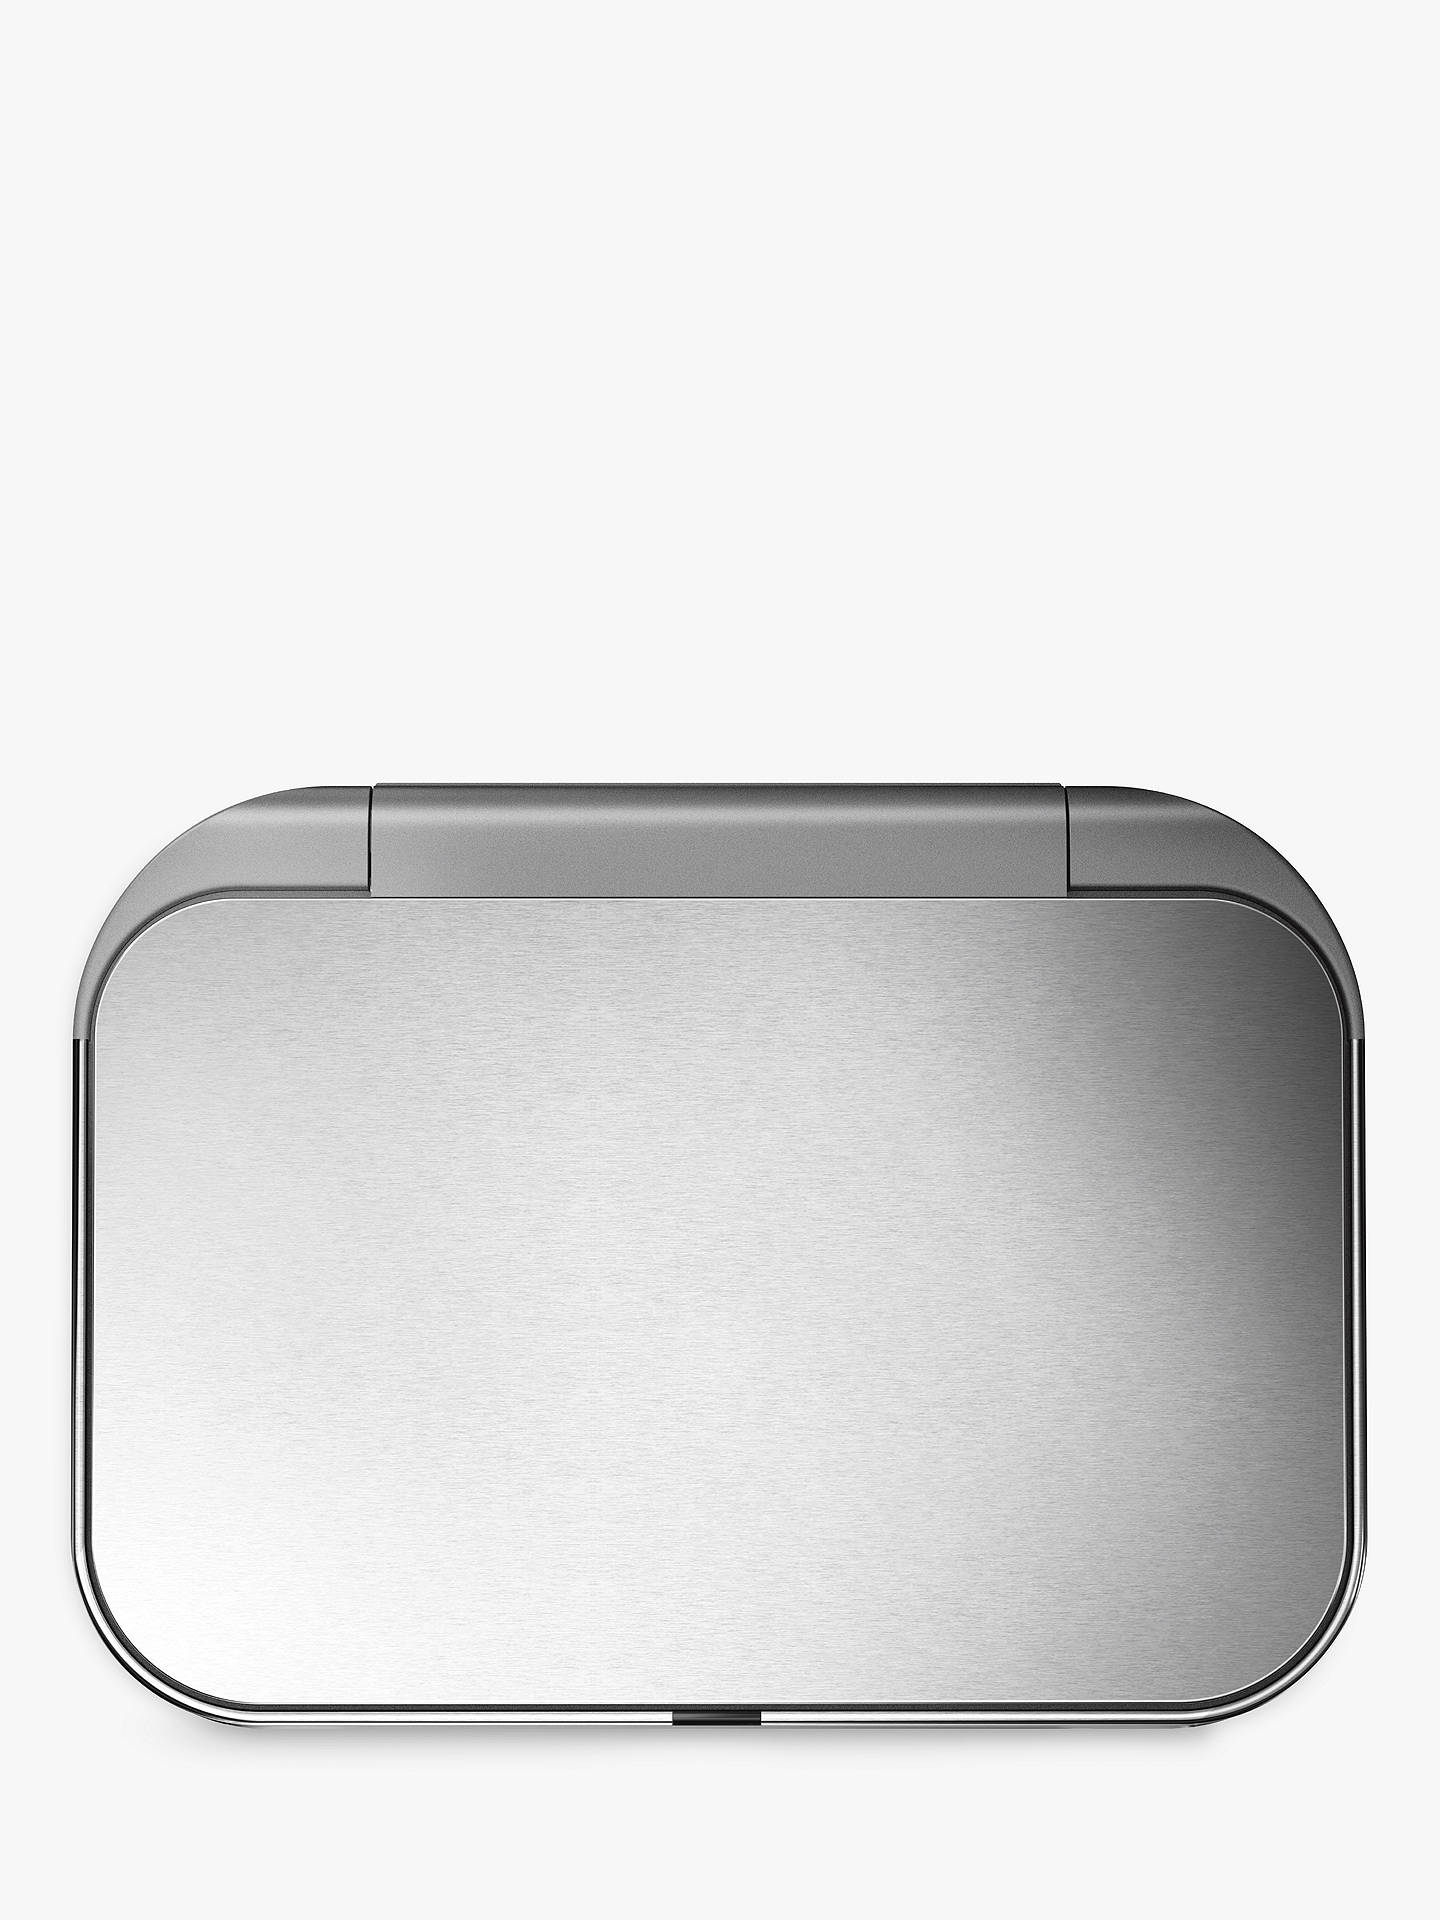 Buy simplehuman Voice Activated Fingerprint Proof Bin, 58L, Brushed Steel Online at johnlewis.com